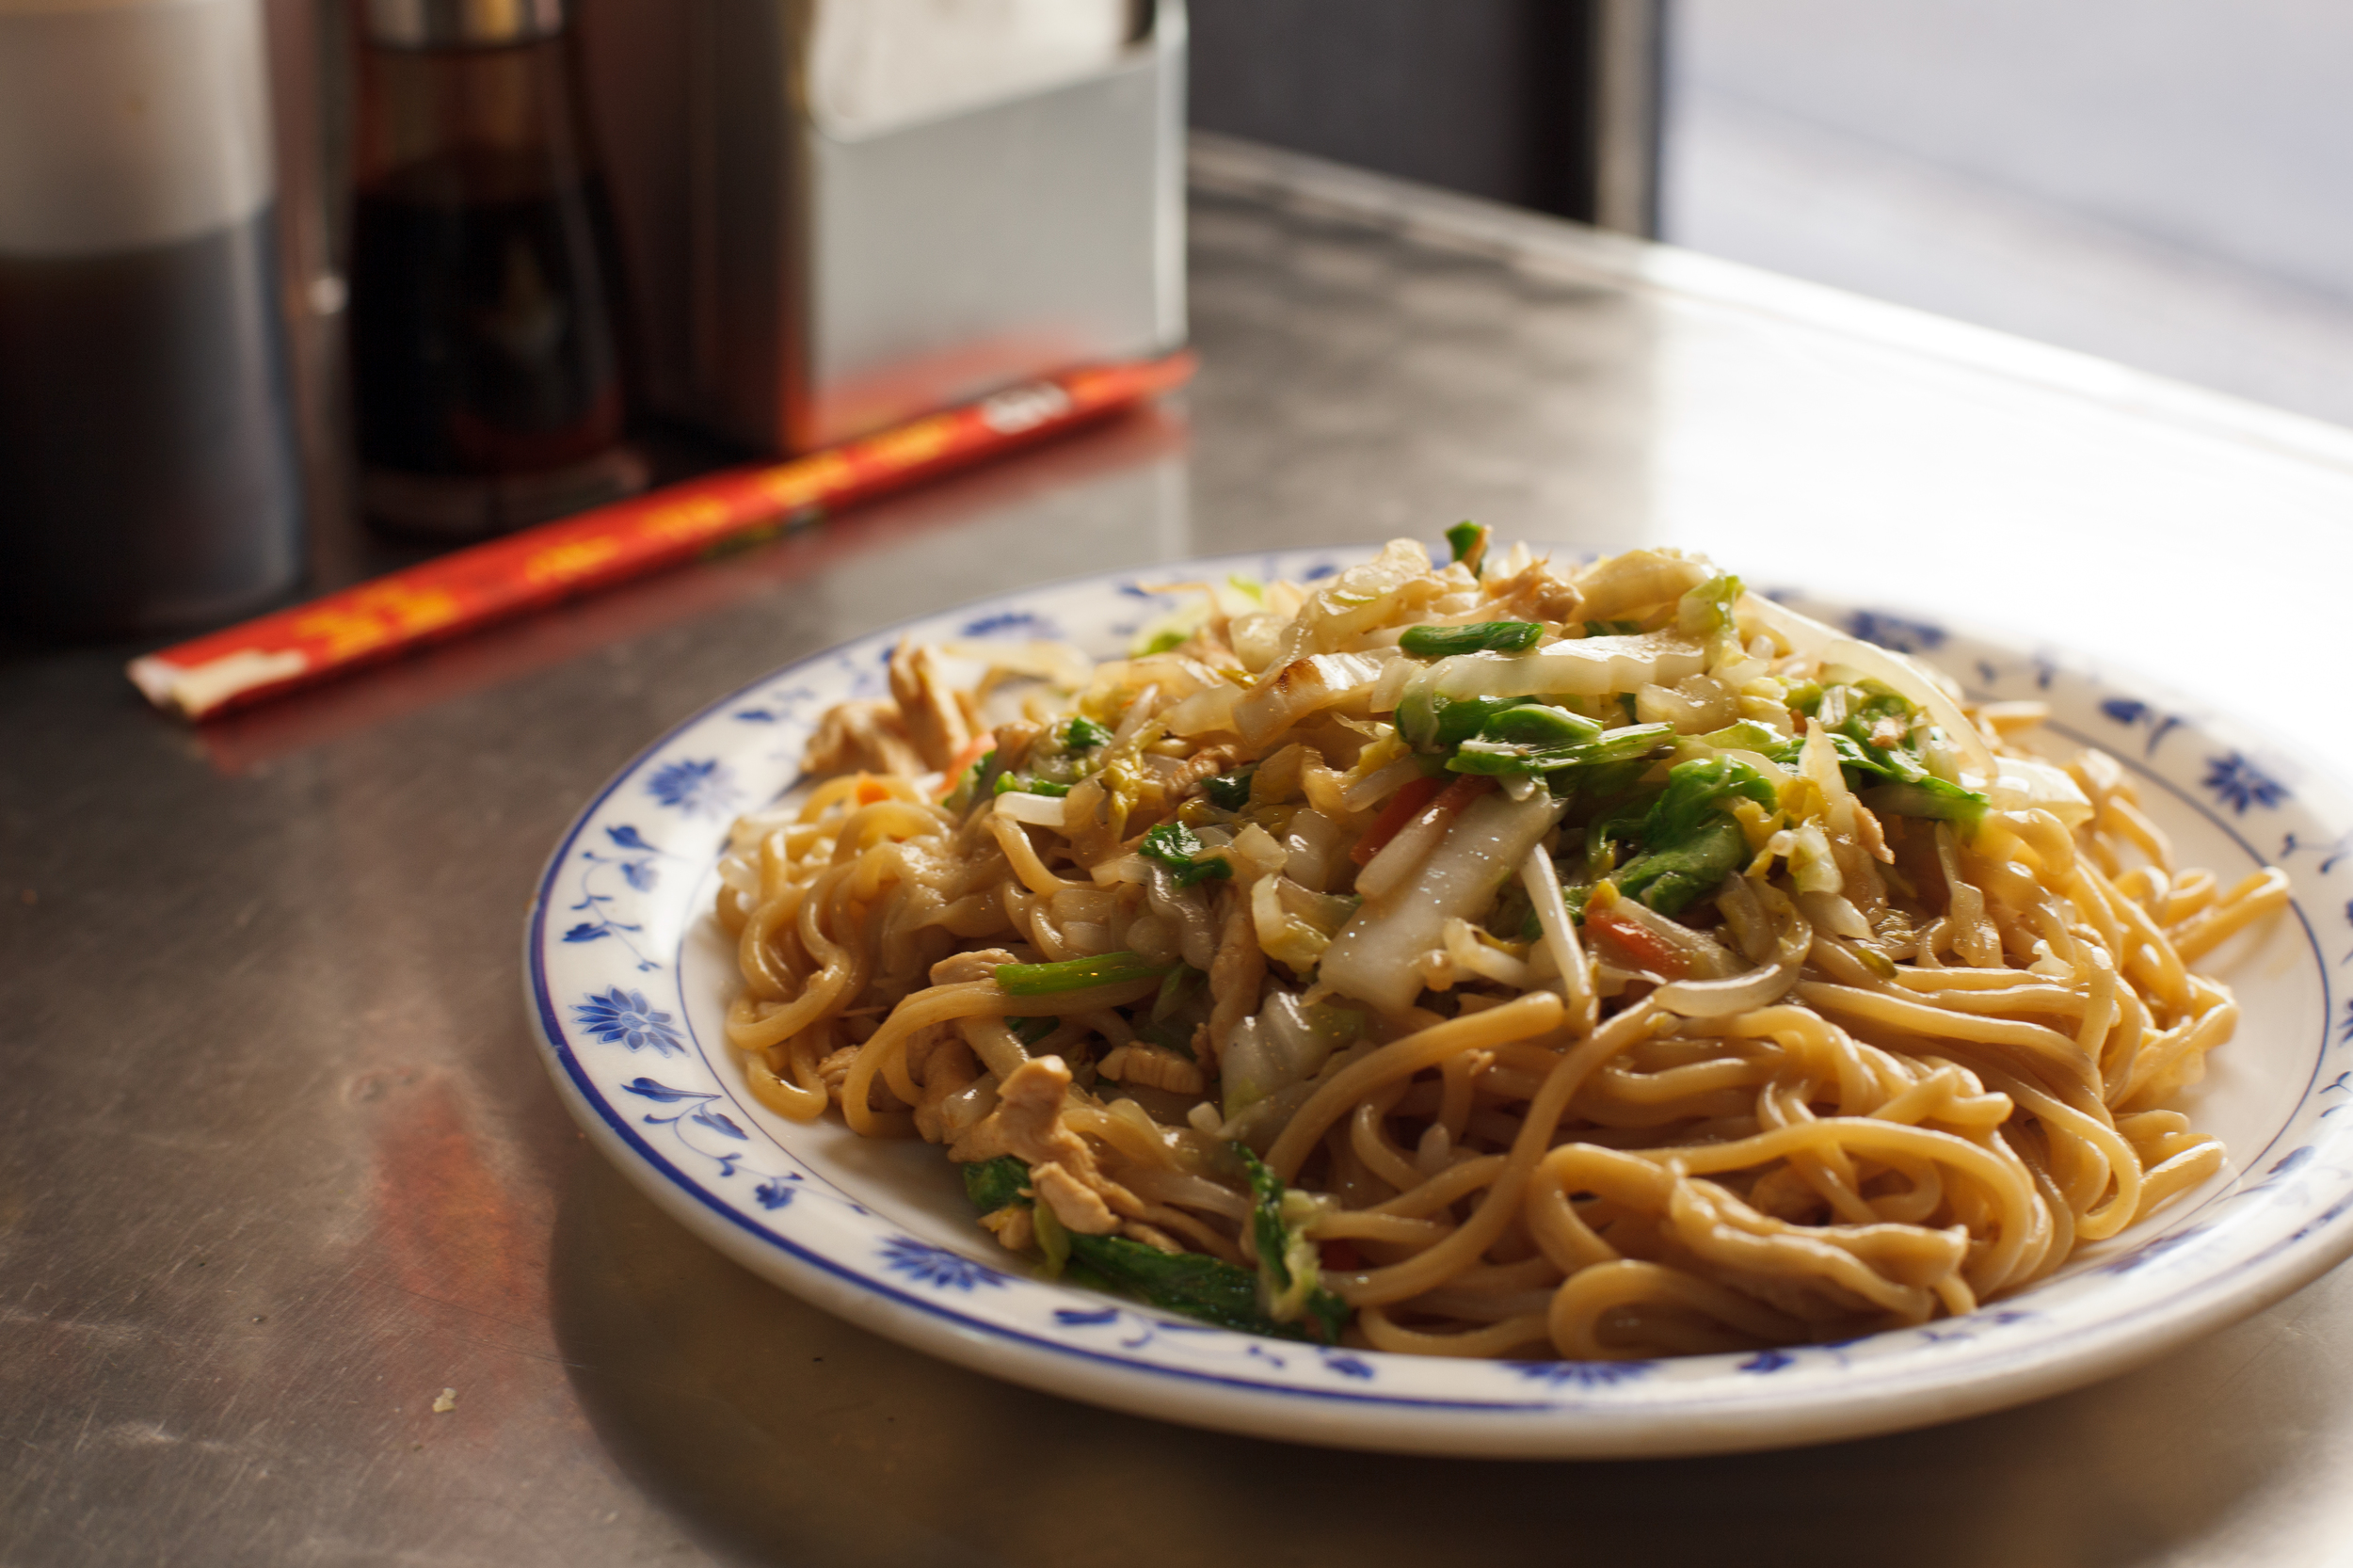 Pan-fried Noodles from Tasty Hand-Pulled Noodles